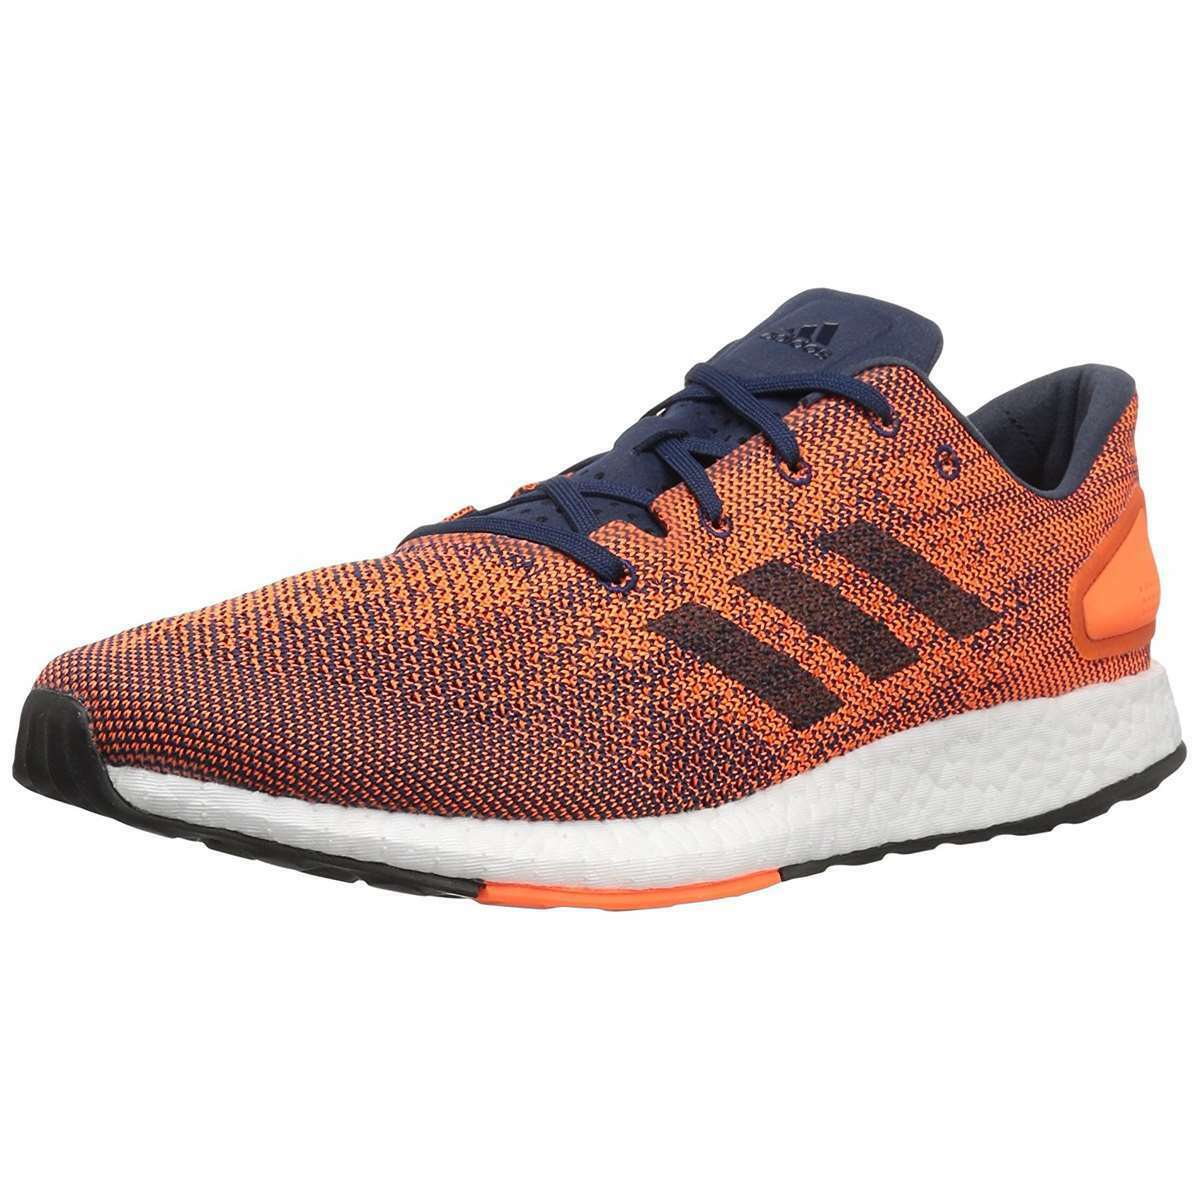 Adidas Men Athletic shoes Pureboost Dpr Running shoes Collegiate Navy